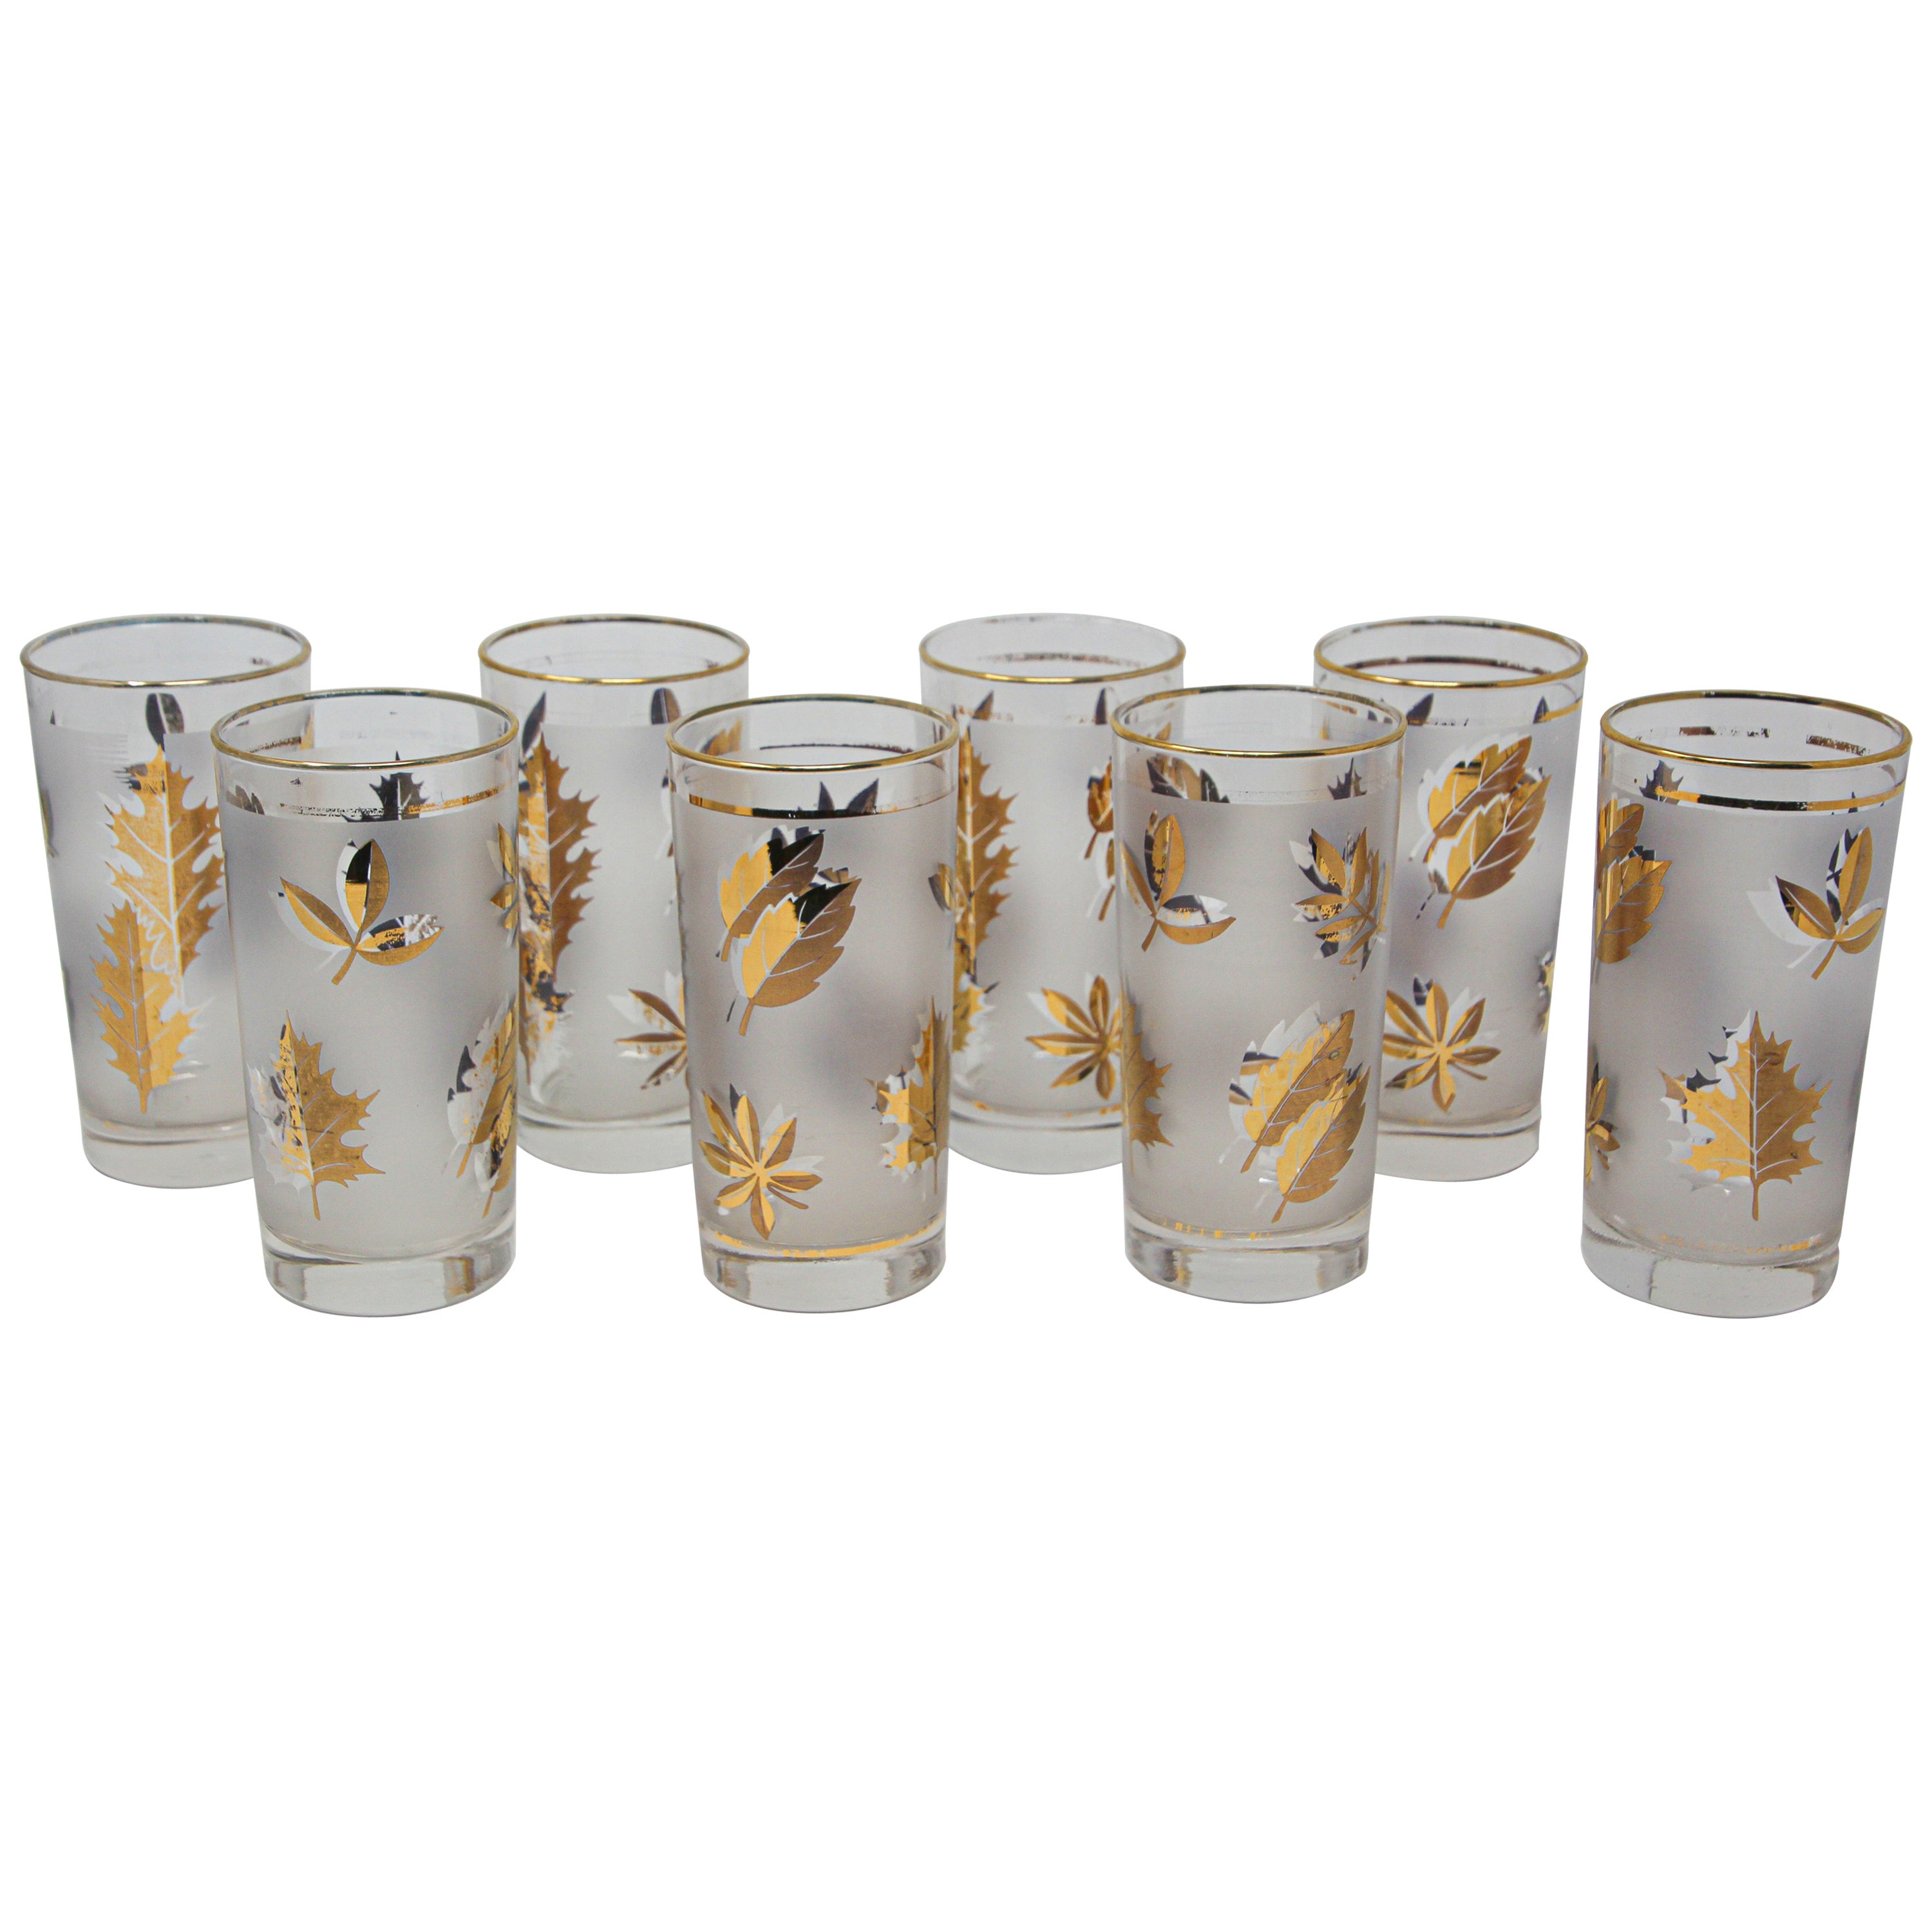 Vintage Midcentury Libbey Set of Eight Highball Frosted and Gold Glasses